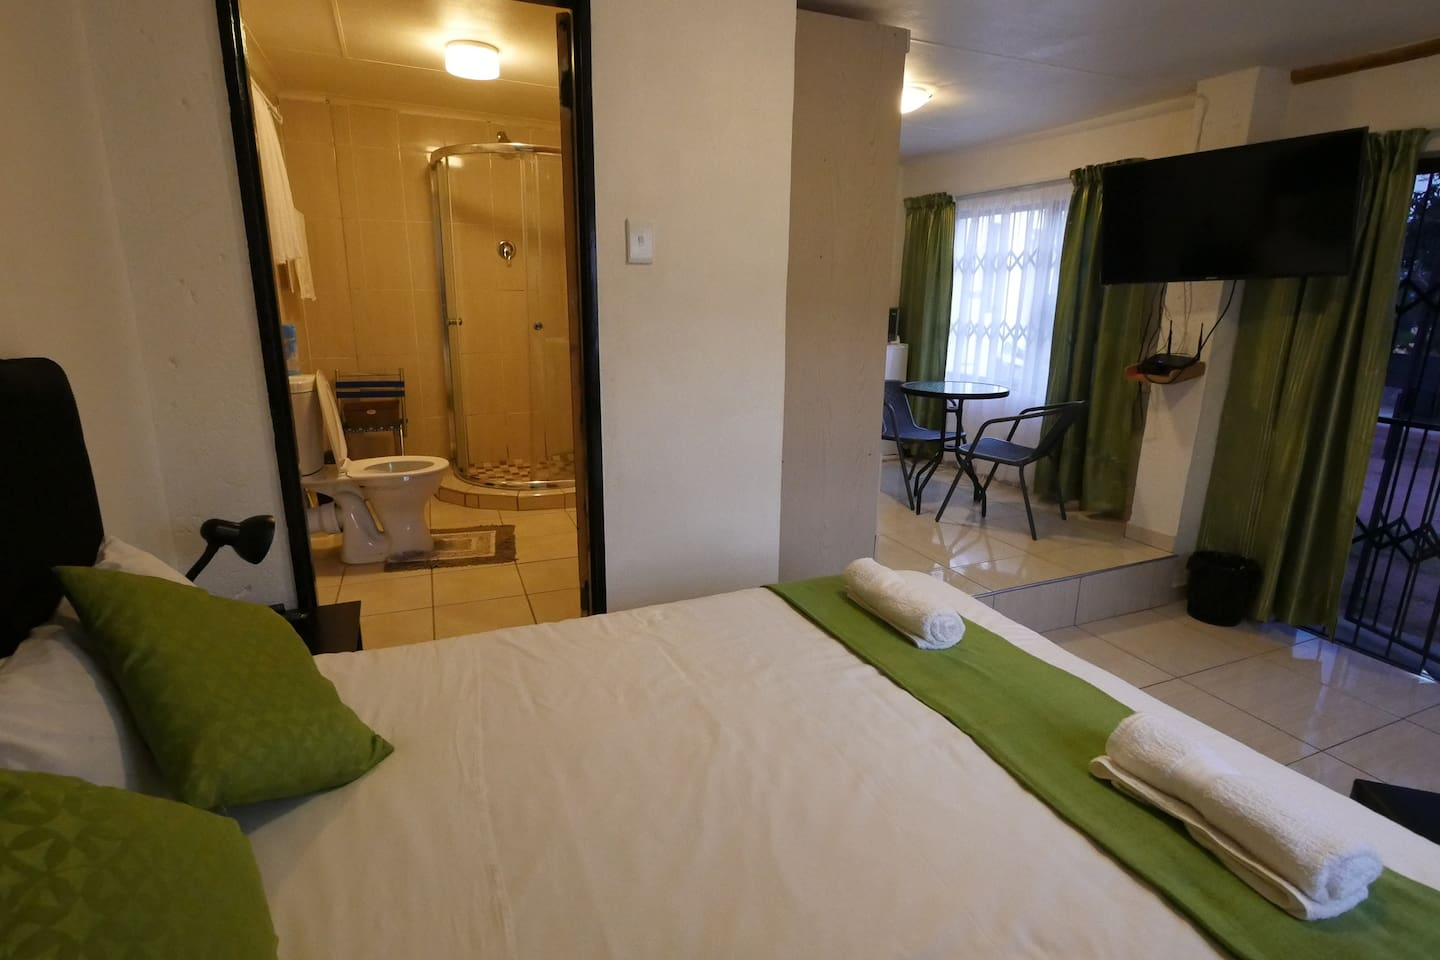 The inside of the accommodation